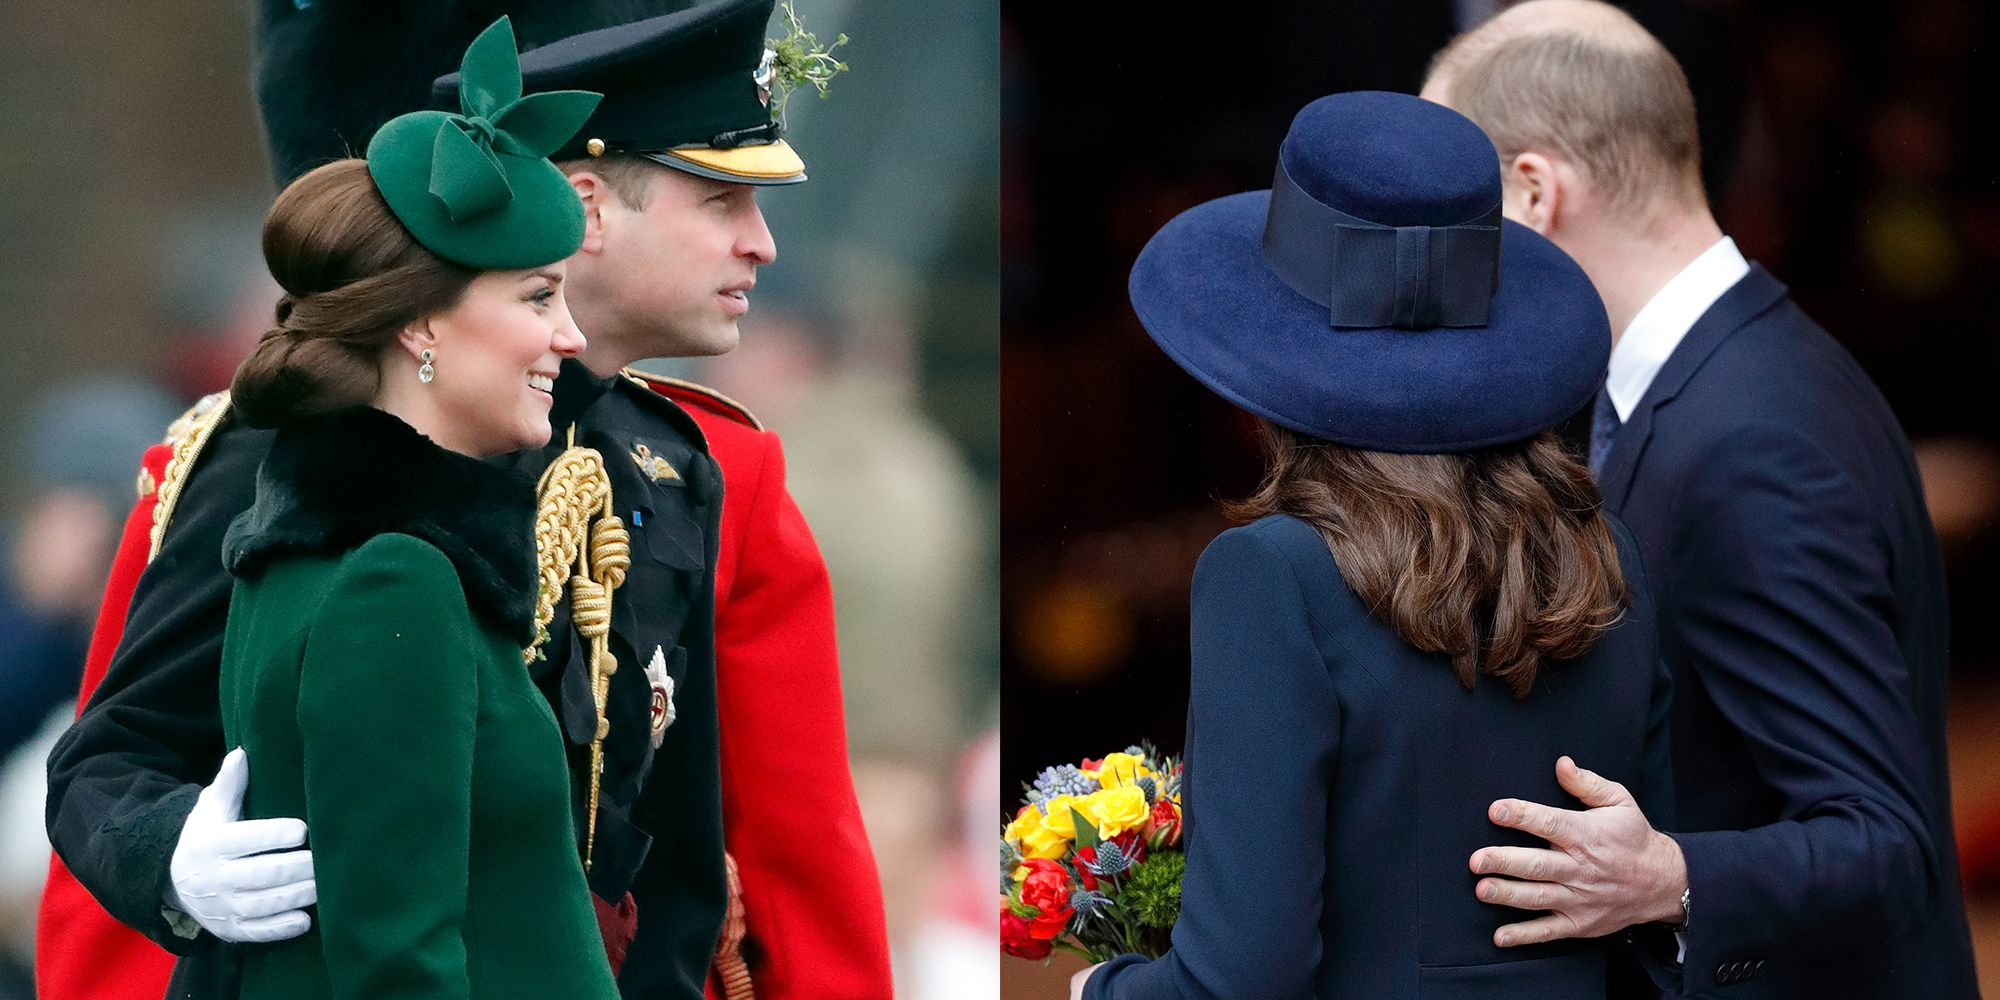 Kate Middleton and Prince William Show Rare PDA at Princess Eugenies Wedding